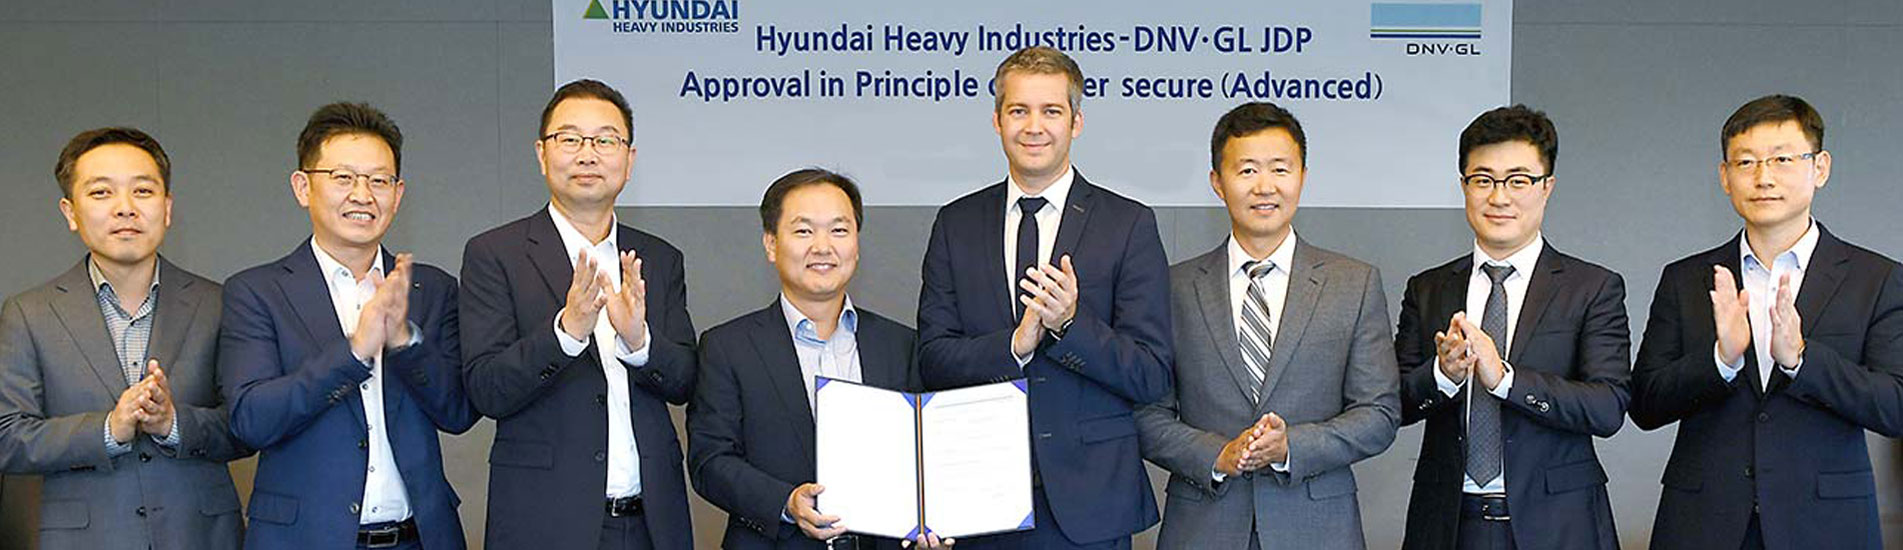 Photo from left: Hyun Ho Lee, VP, HHI; Dong Jin Lee, VP, HHI; Young Jun Nam, EVP, HHI; Hyung Kwan Kim, EVP & CTO, HHI; Jarle Coll Blomhoff, Head of Cyber Security, DNV GL; Andreas Kristoffersen, Head of Section, DNV GL; Dong Ho Park, Senior Approval Engineer, DNV GL; Choi Tae Sik, Team Leader, HHI